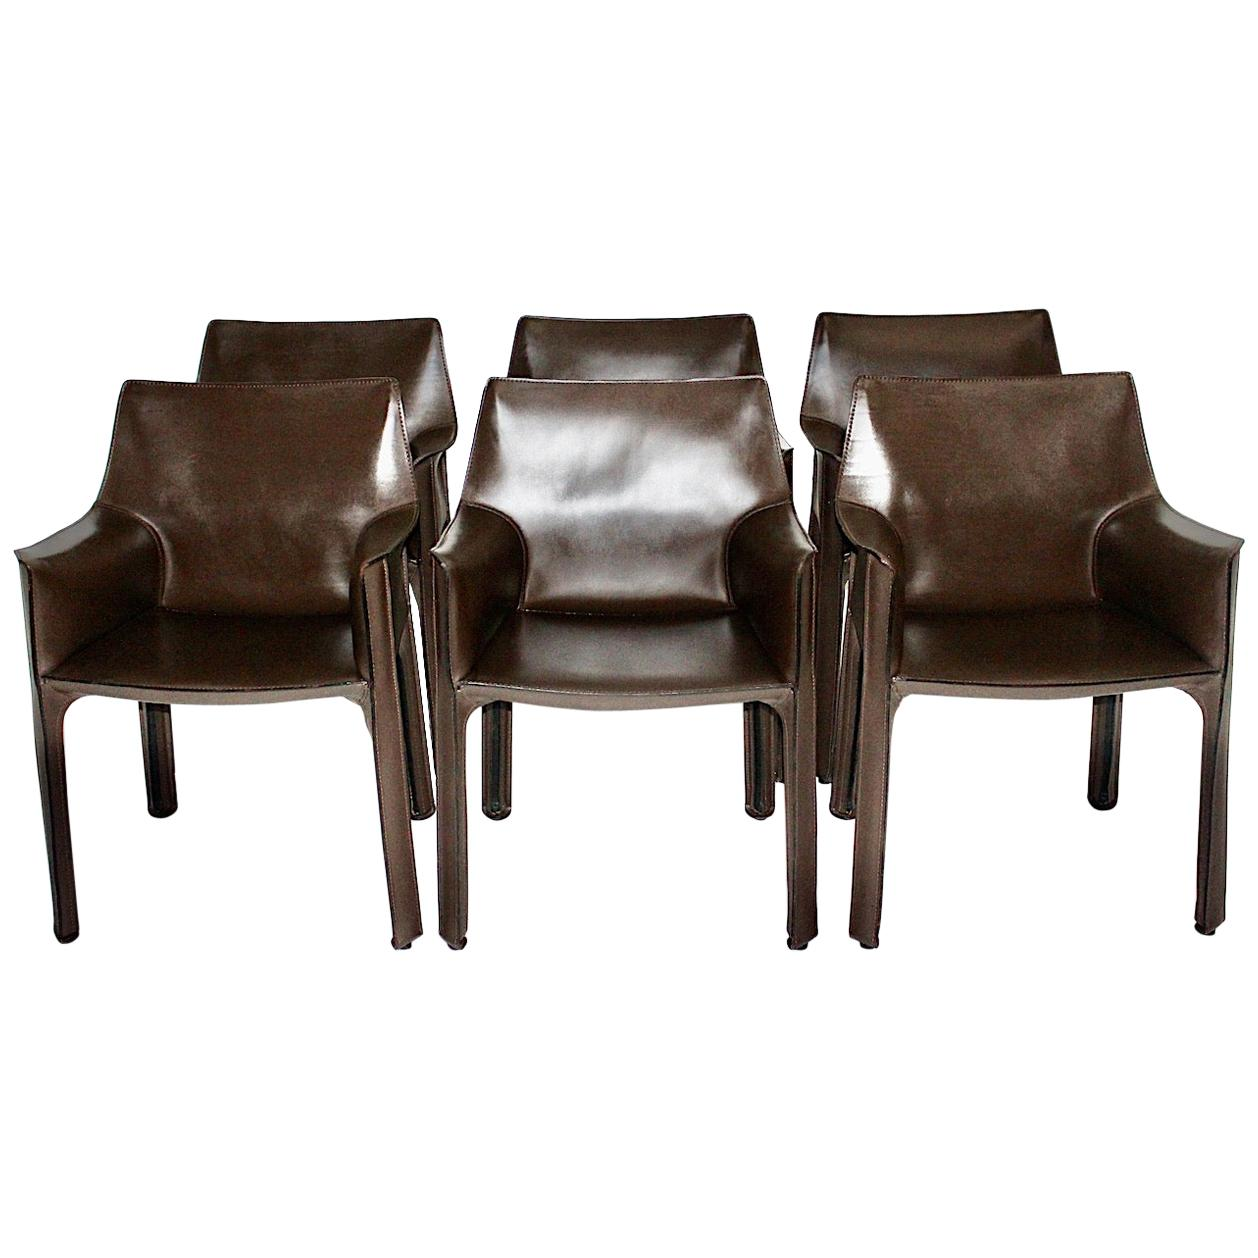 Mario Bellini Vintage Brown Six Leather CAB Dining Chairs Cassina 1970s